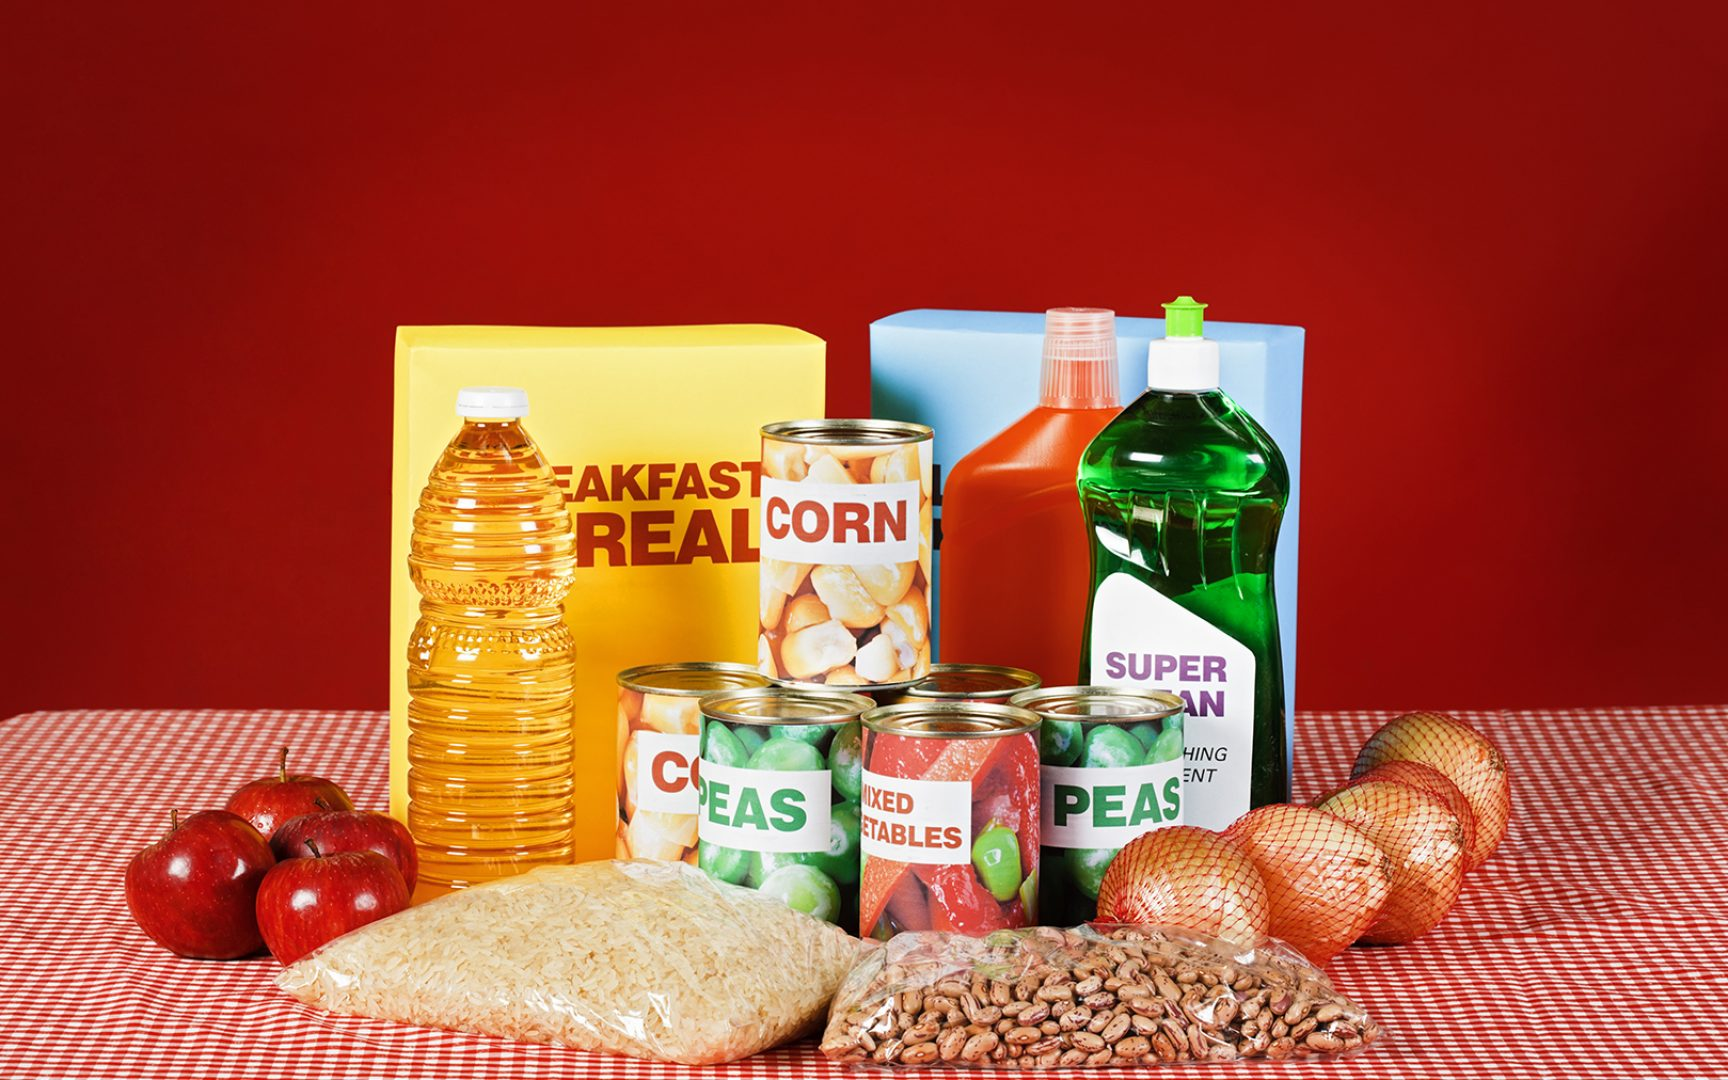 Generic food and cleaning products on gingham against red.